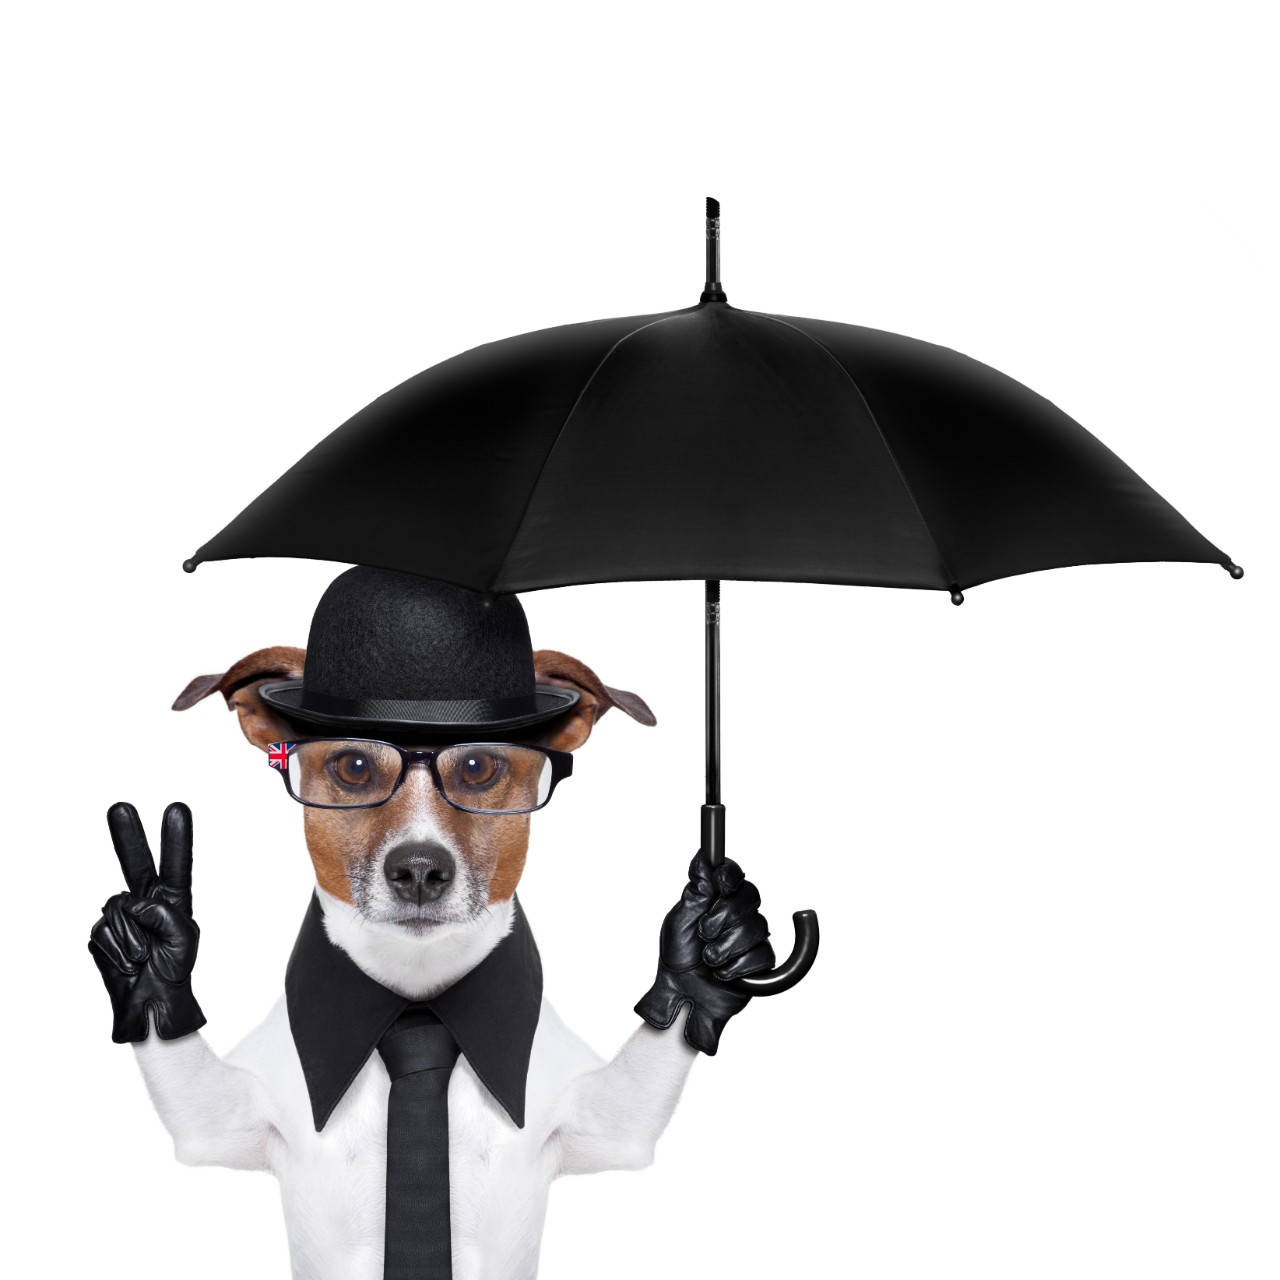 5 Best Dog Umbrella in 2020